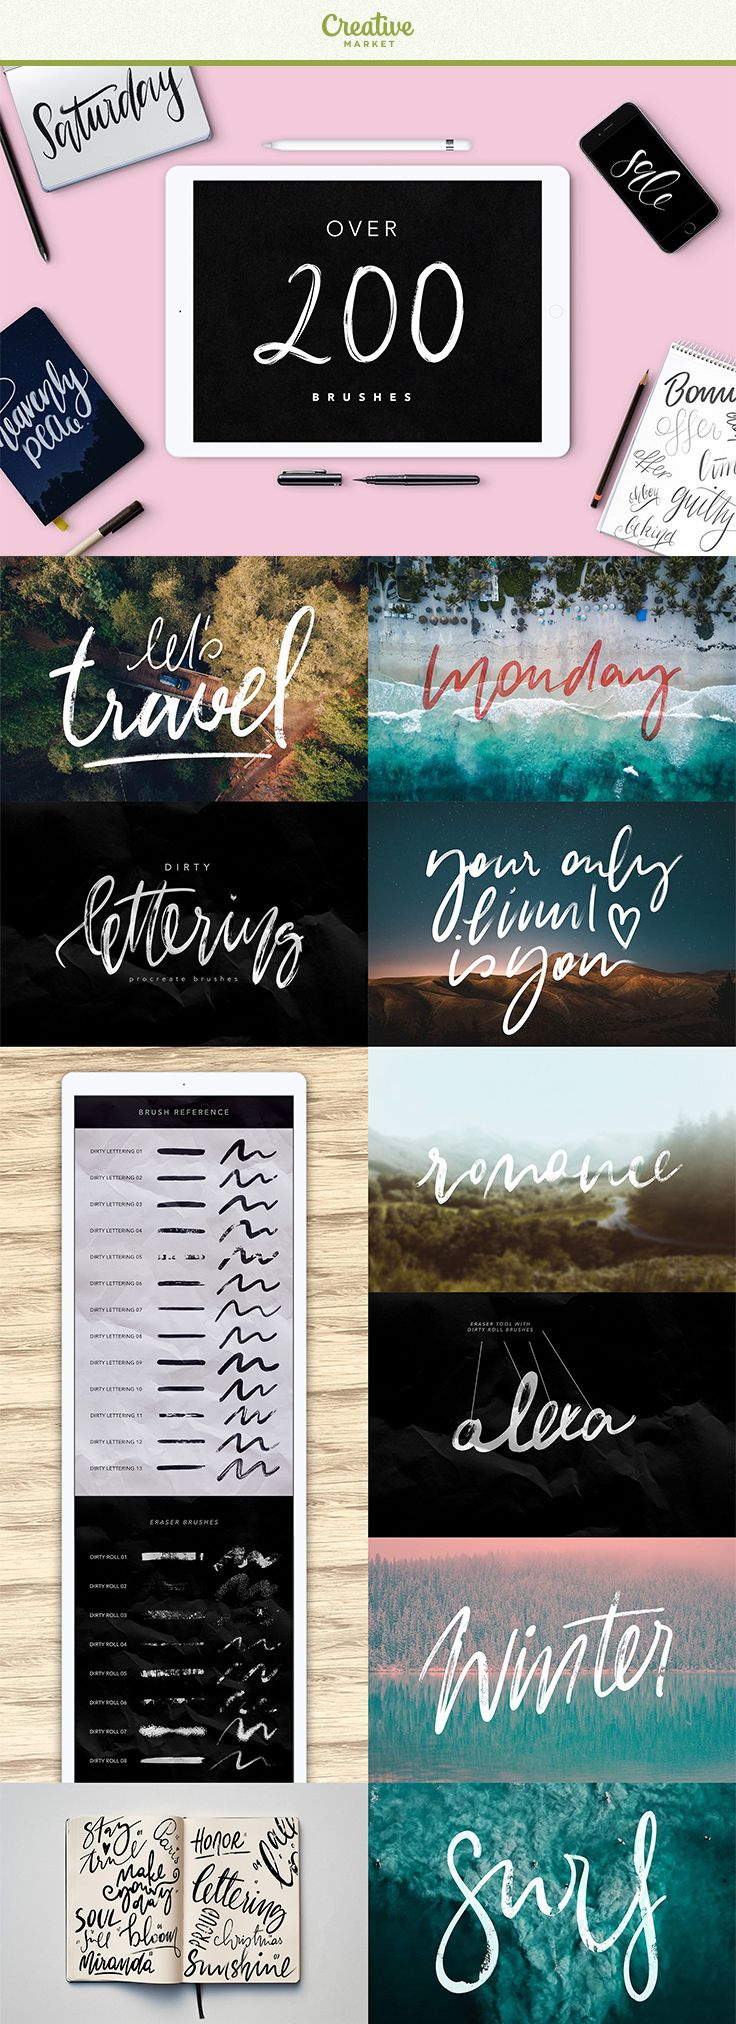 #affiliate This bundle contains over 200 high quality brushes for Procreate. With these brushes you can make astonishing Ipad lettering easily! Pressure sensitive + Apple Pencil on Ipad Pro. Best lettering brushes ever!